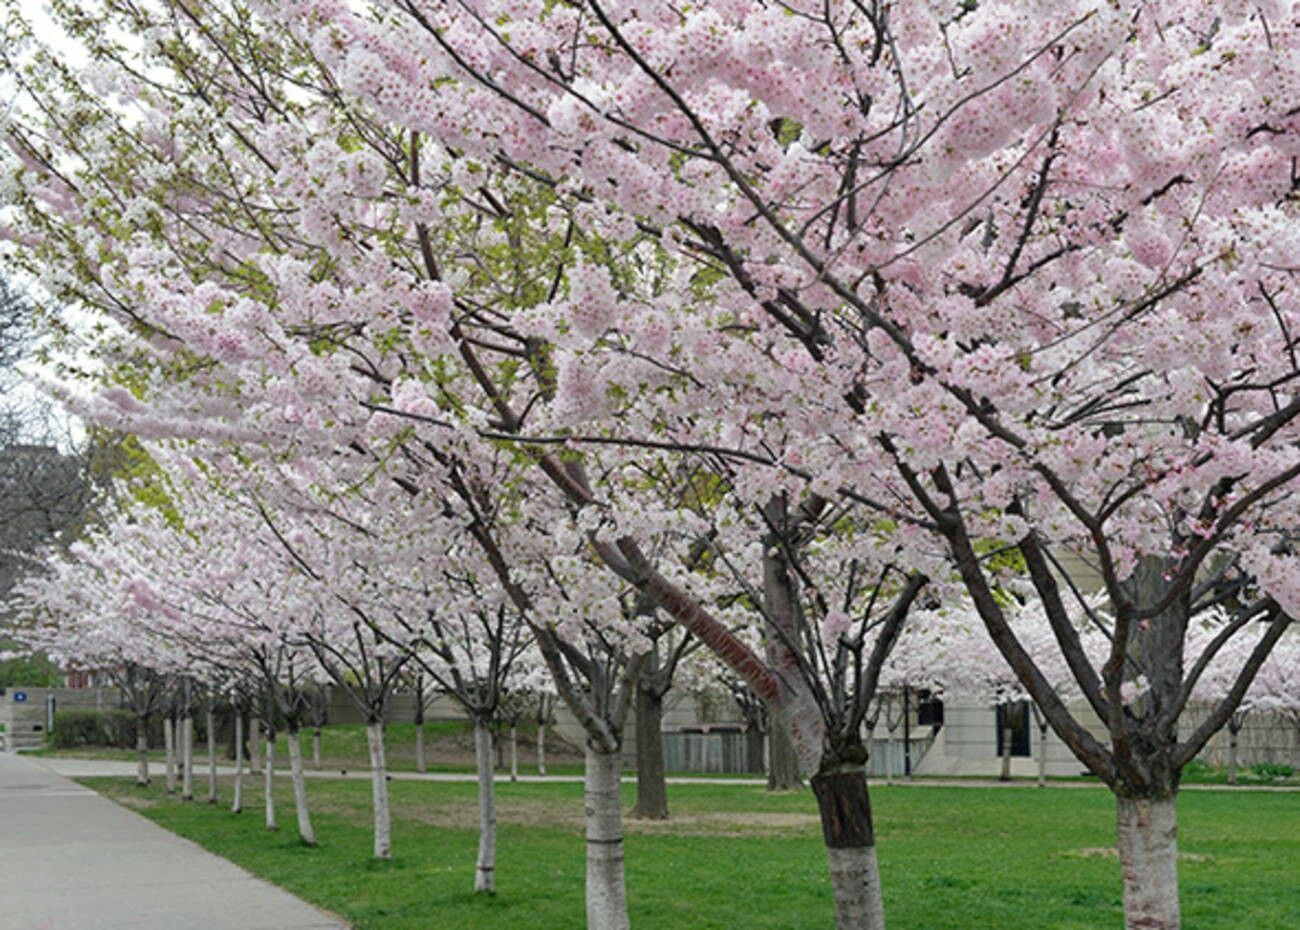 Pin By Flowers In Heart On Cherry Blossoms Cherry Blossom Blossom Discover Canada